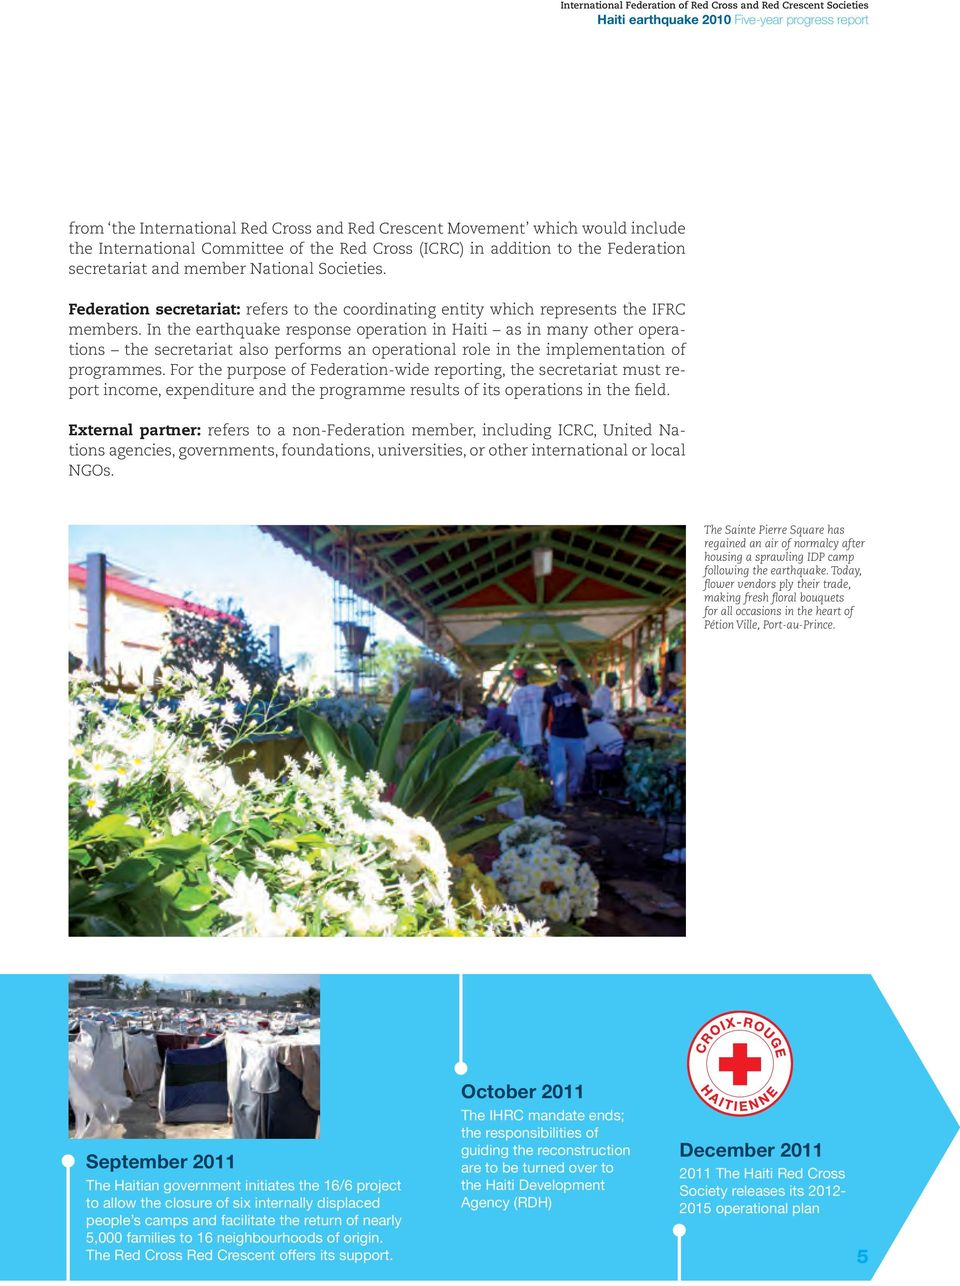 In the earthquake response operation in Haiti as in many other operations the secretariat also performs an operational role in the implementation of programmes.